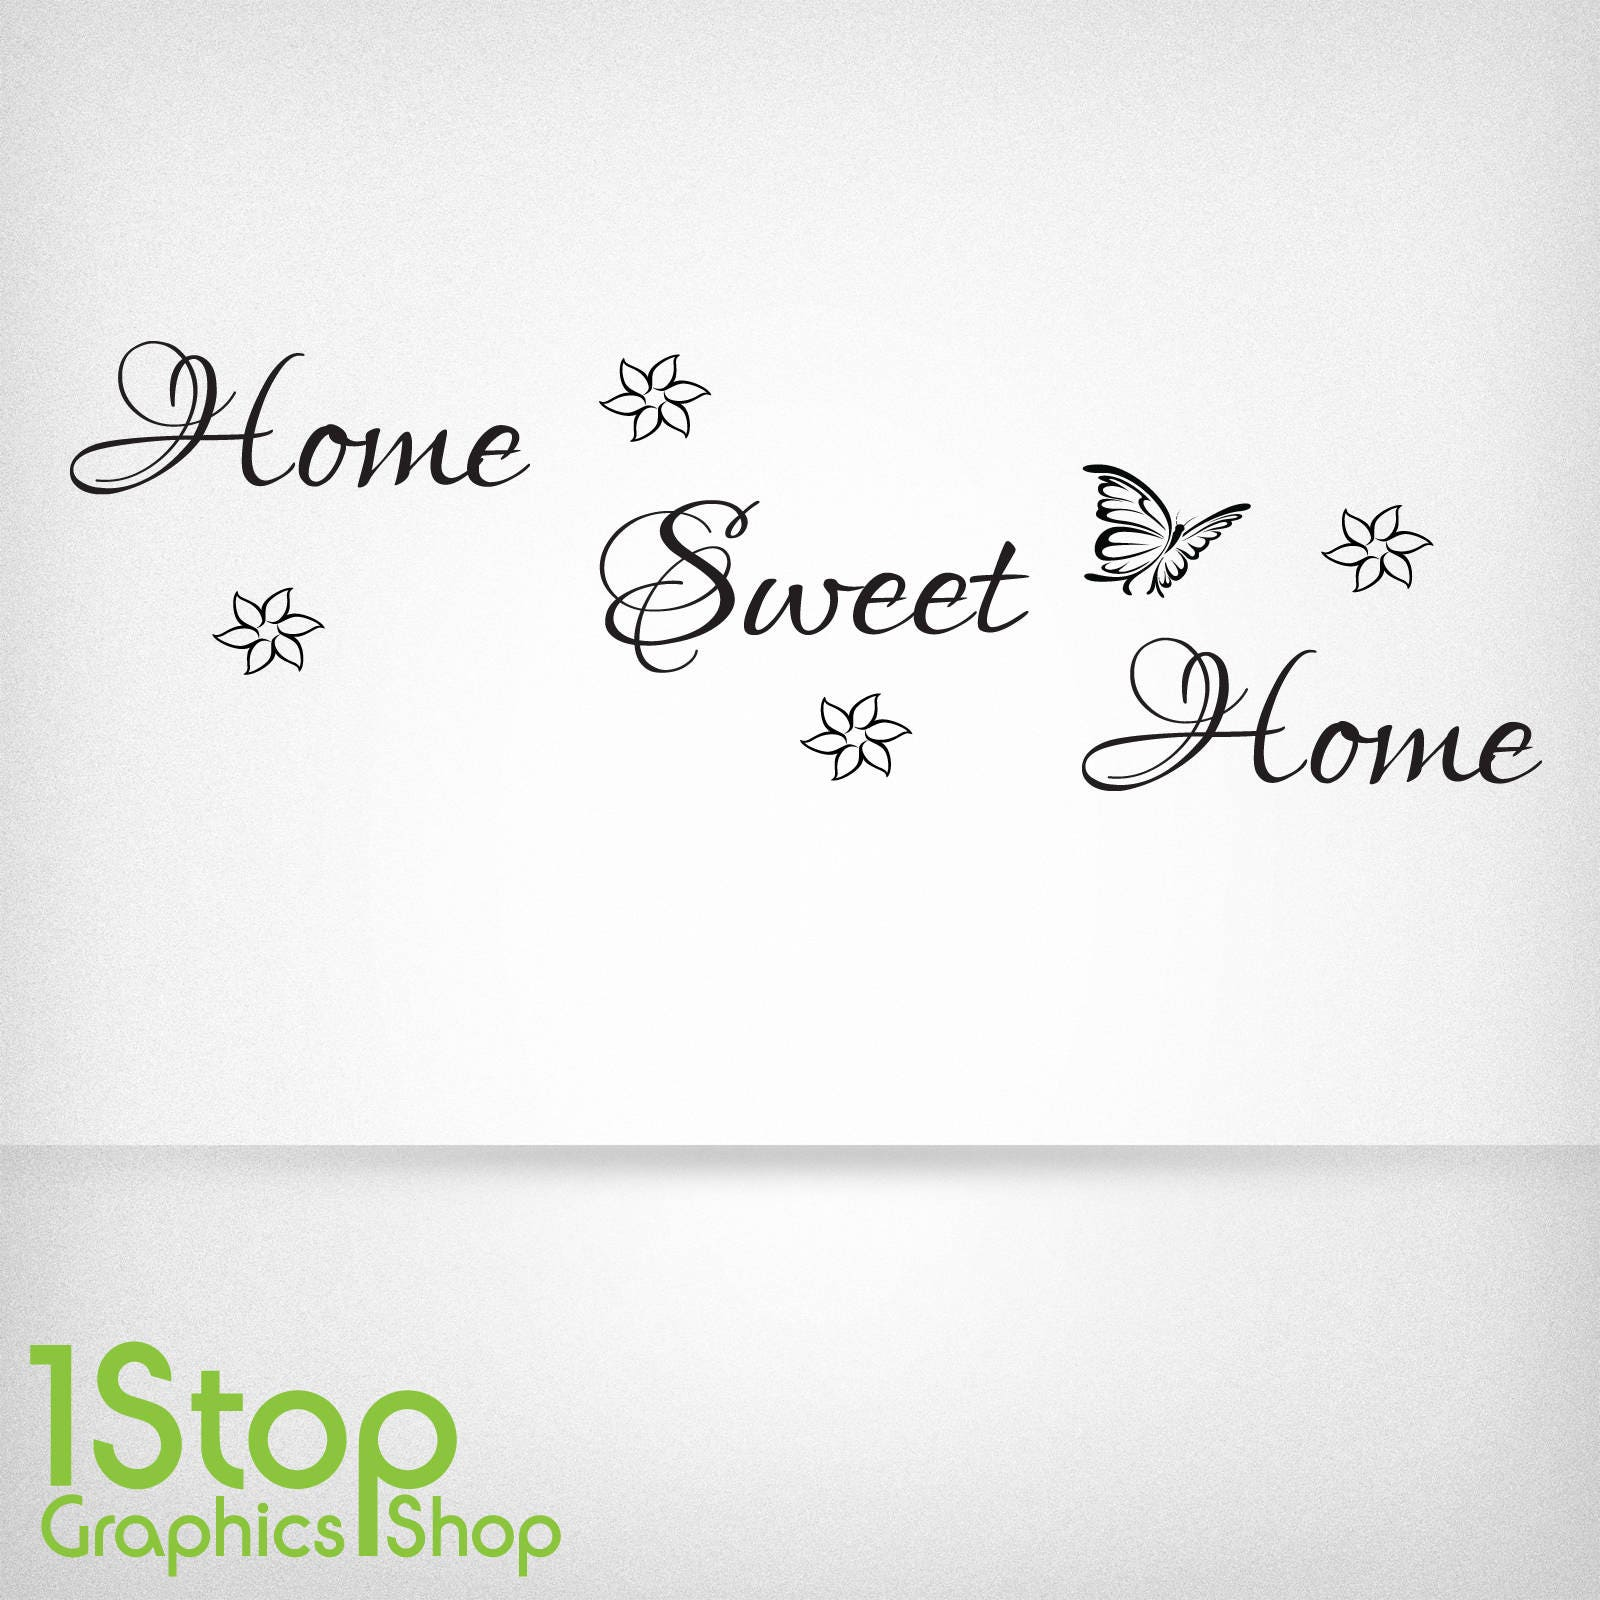 Home Sweet Home Wall Sticker Quote Bedroom Lounge Wall Art Decal X97